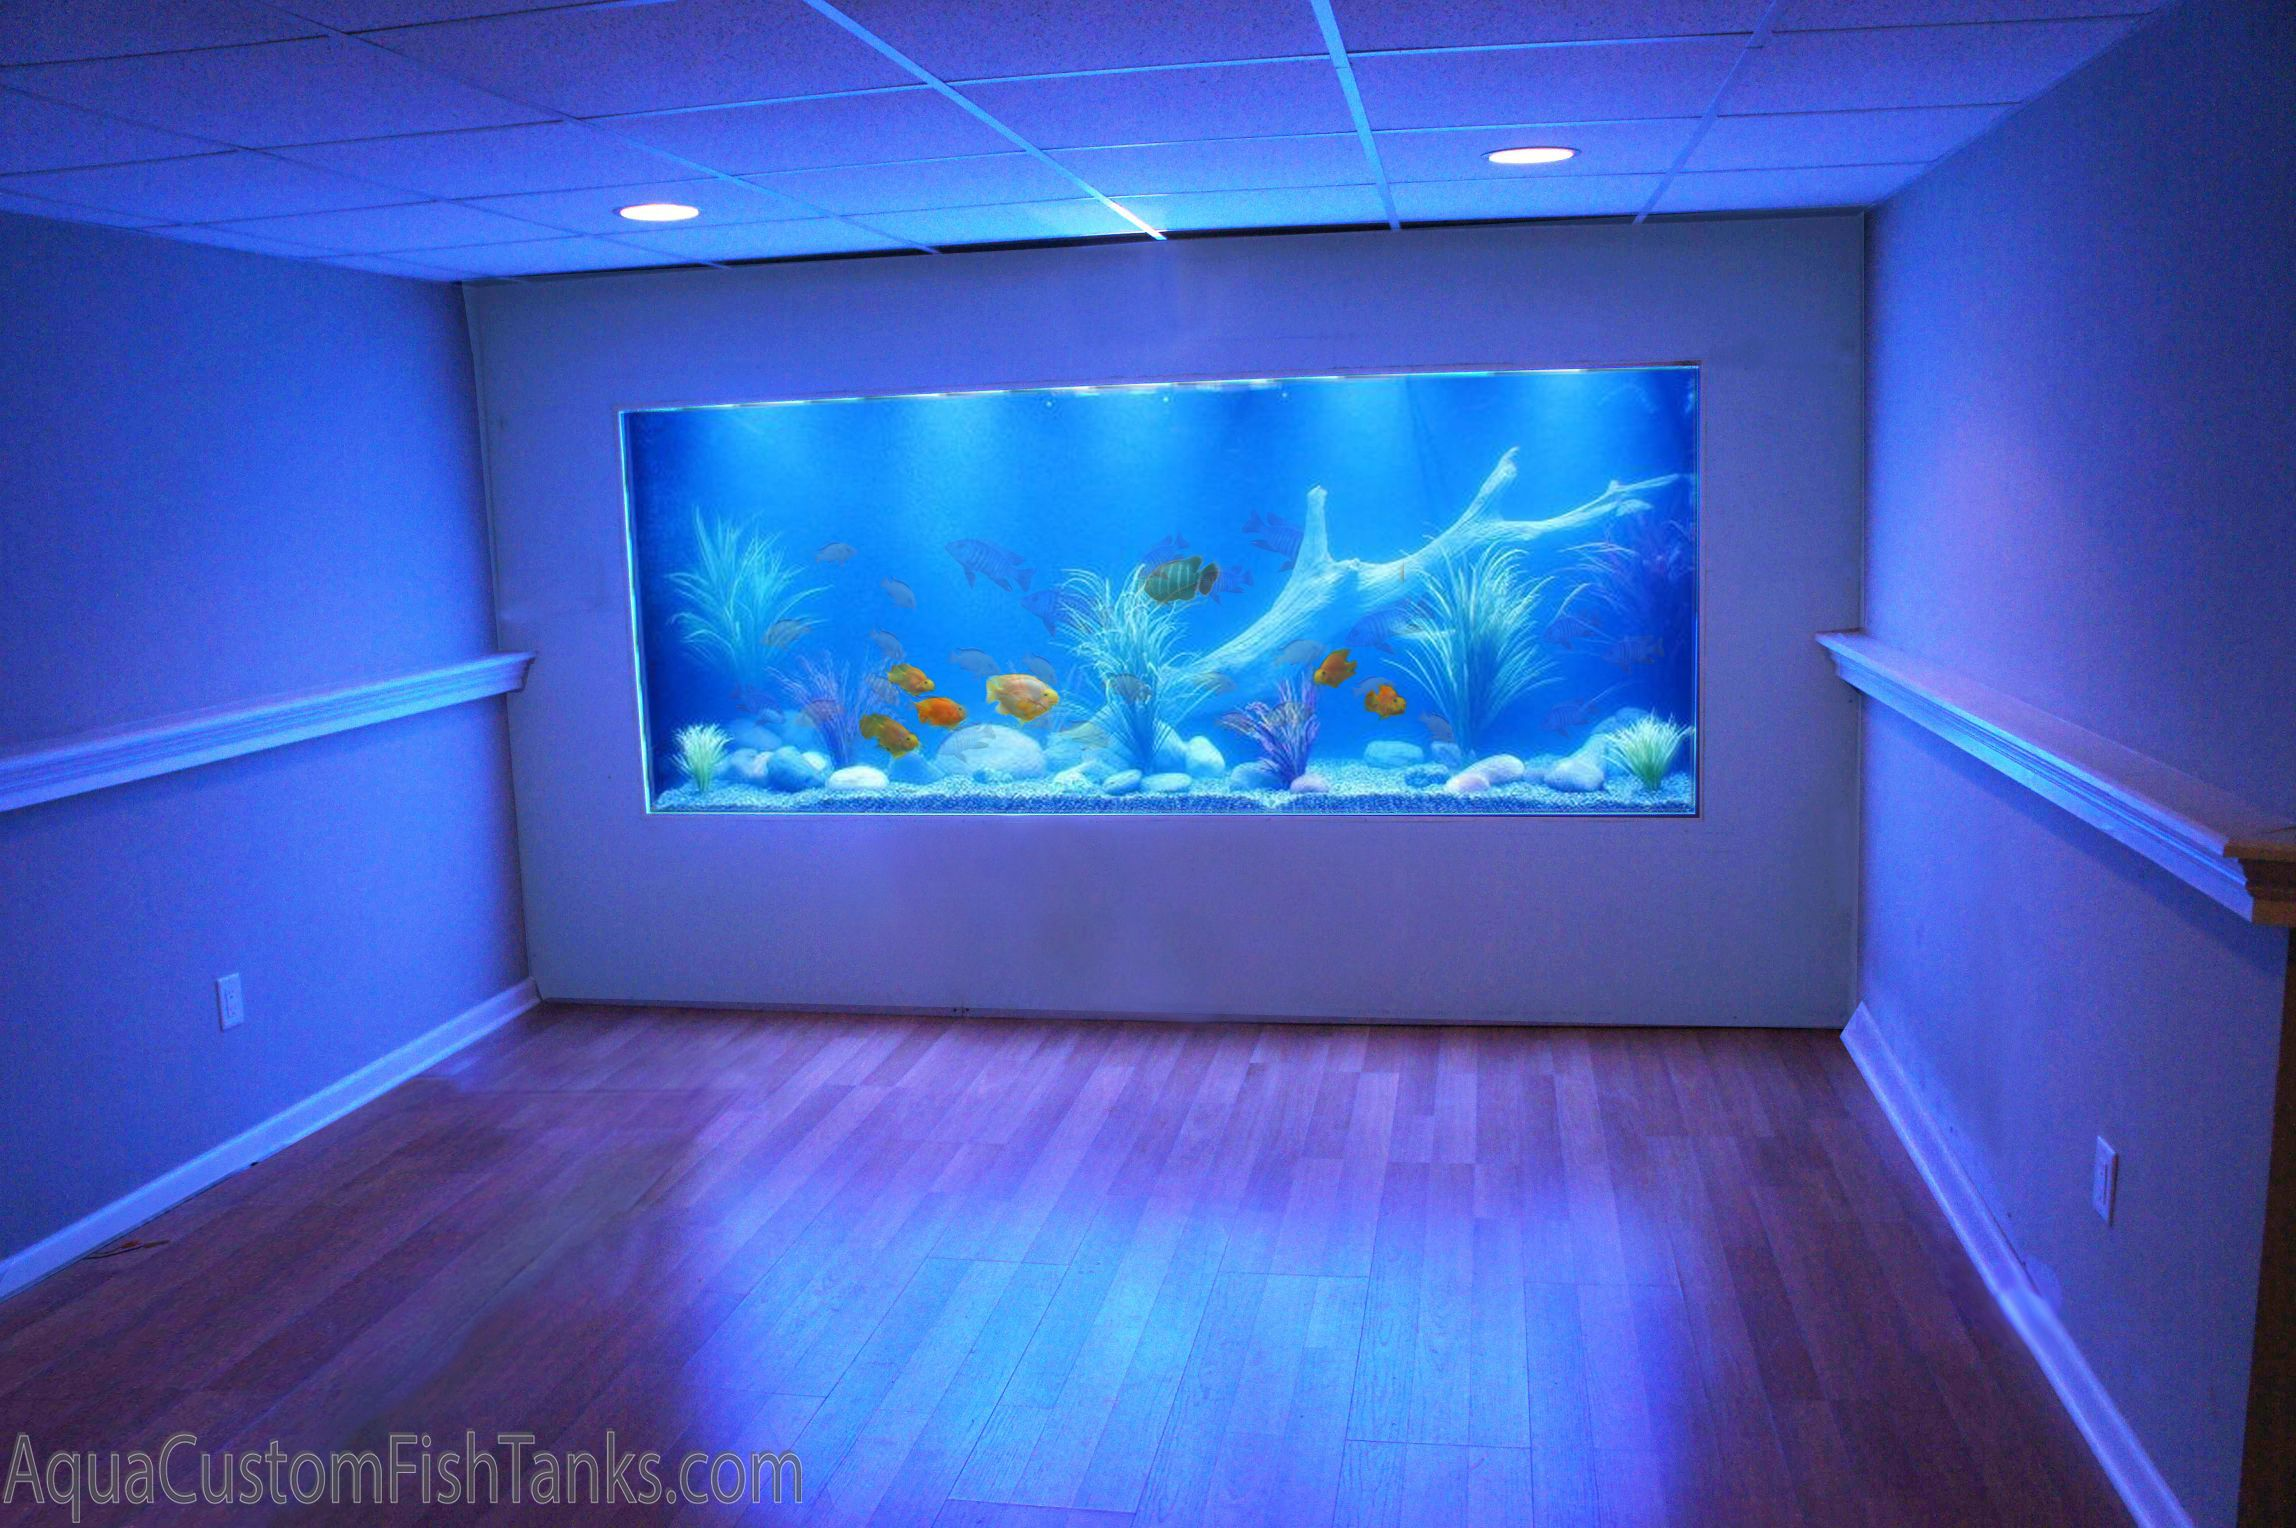 headboard ideas tank staggering image in aquarium fish frame bedroom